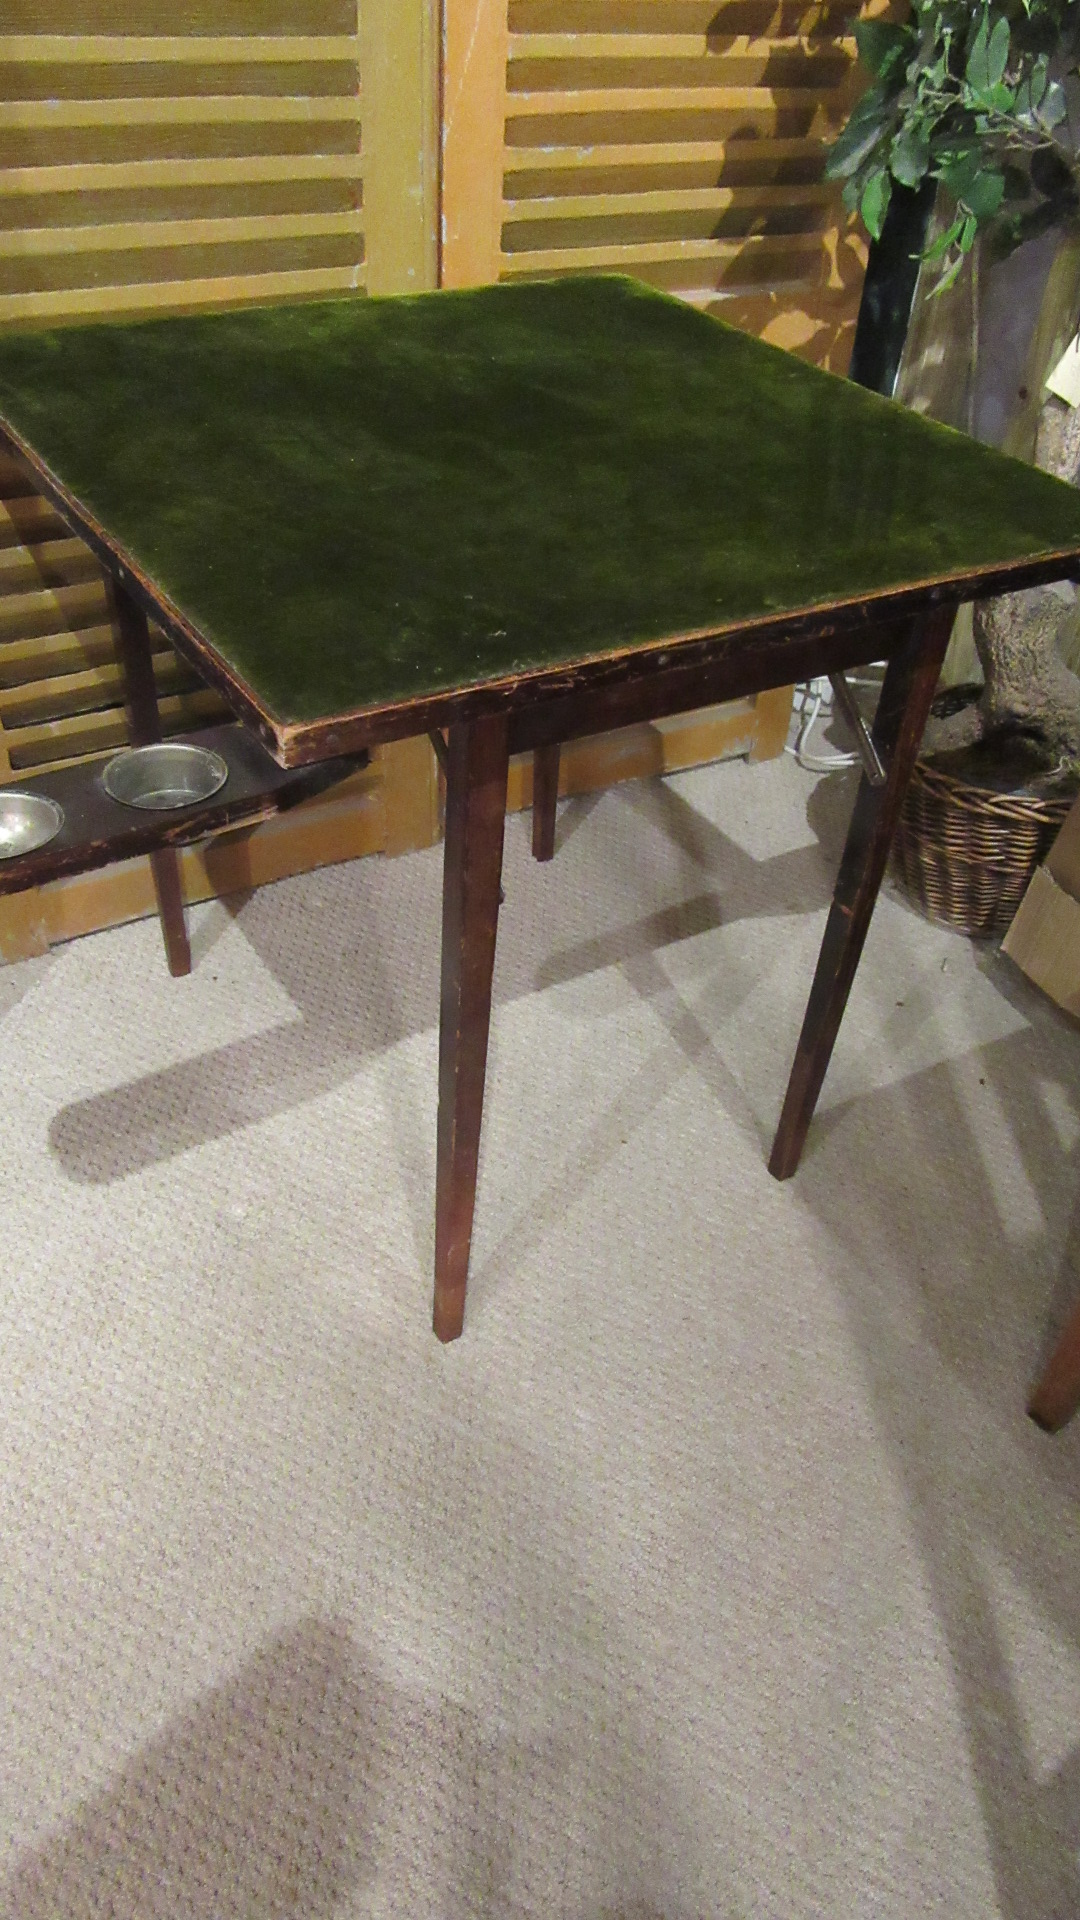 ANTIQUE EDWARDIAN FOLDING GAMES TABLE